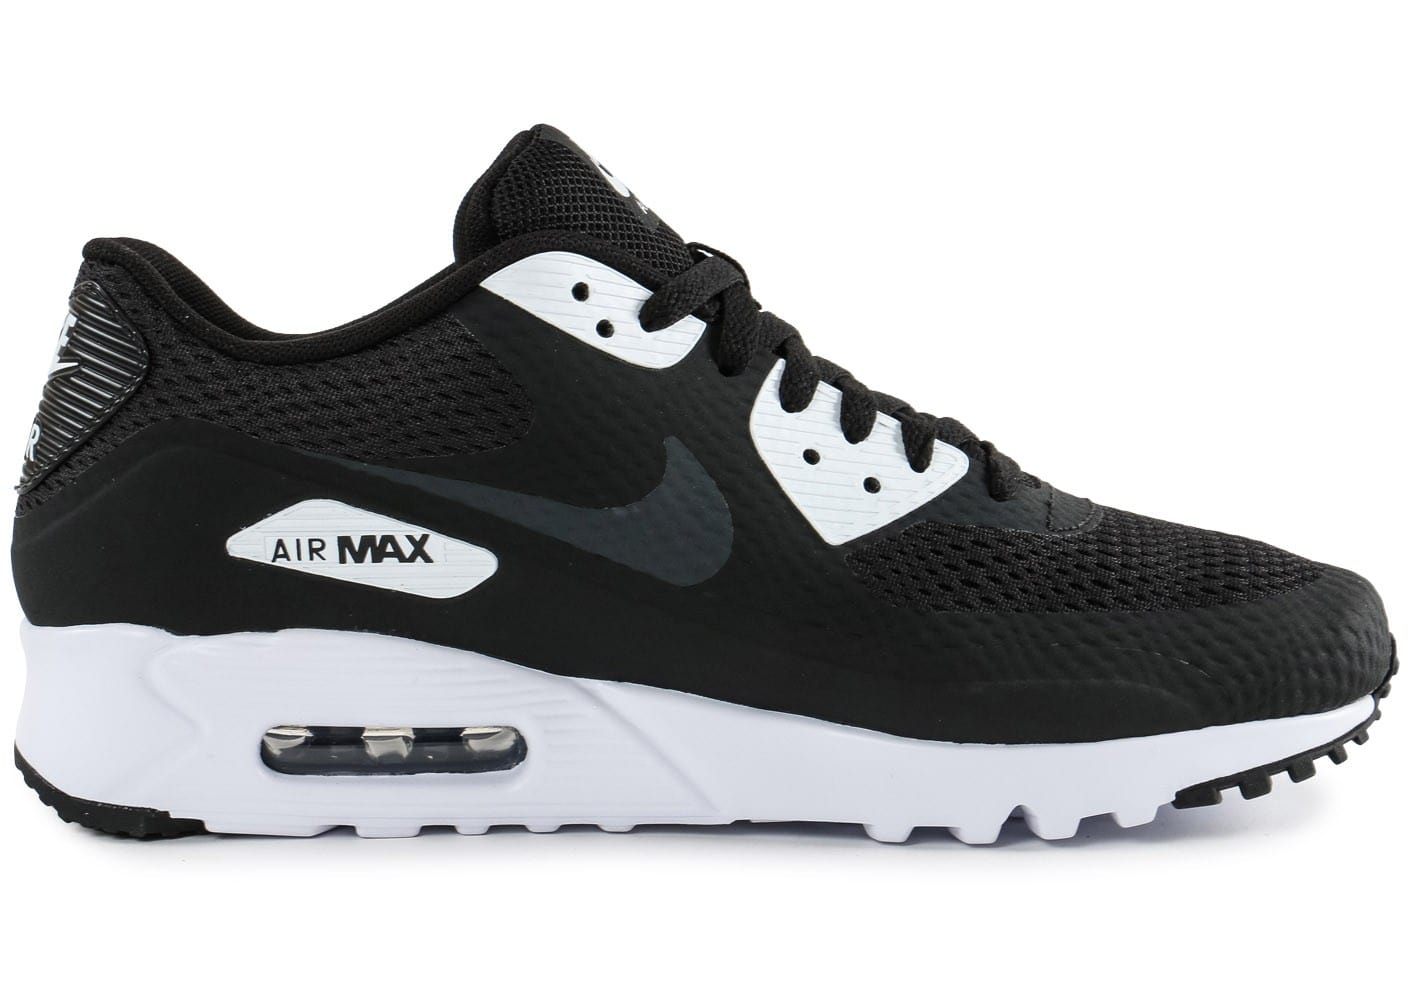 low priced 32d01 15dff ... purchase nike magasin de chaussures nike air max 90 ultra se mens shoe  noir nike air